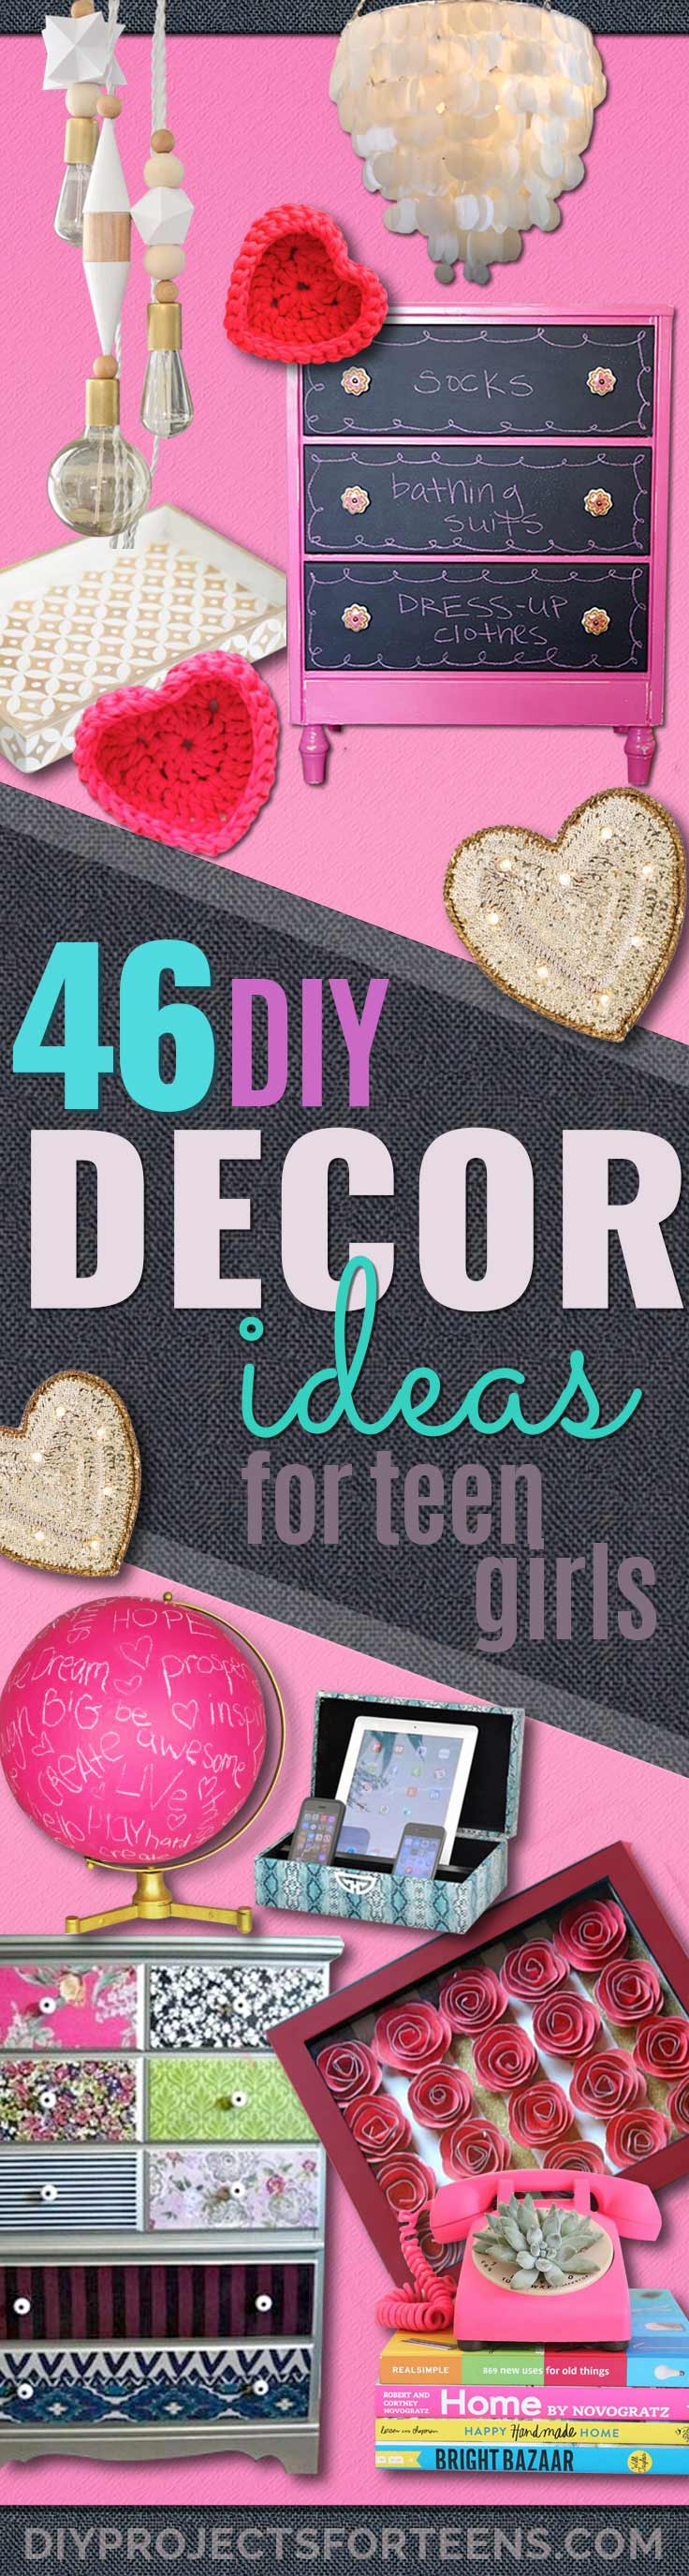 Most Awesome DIY Decor Ideas For Teen Girls DIY Projects For - Cool girl bedroom designs